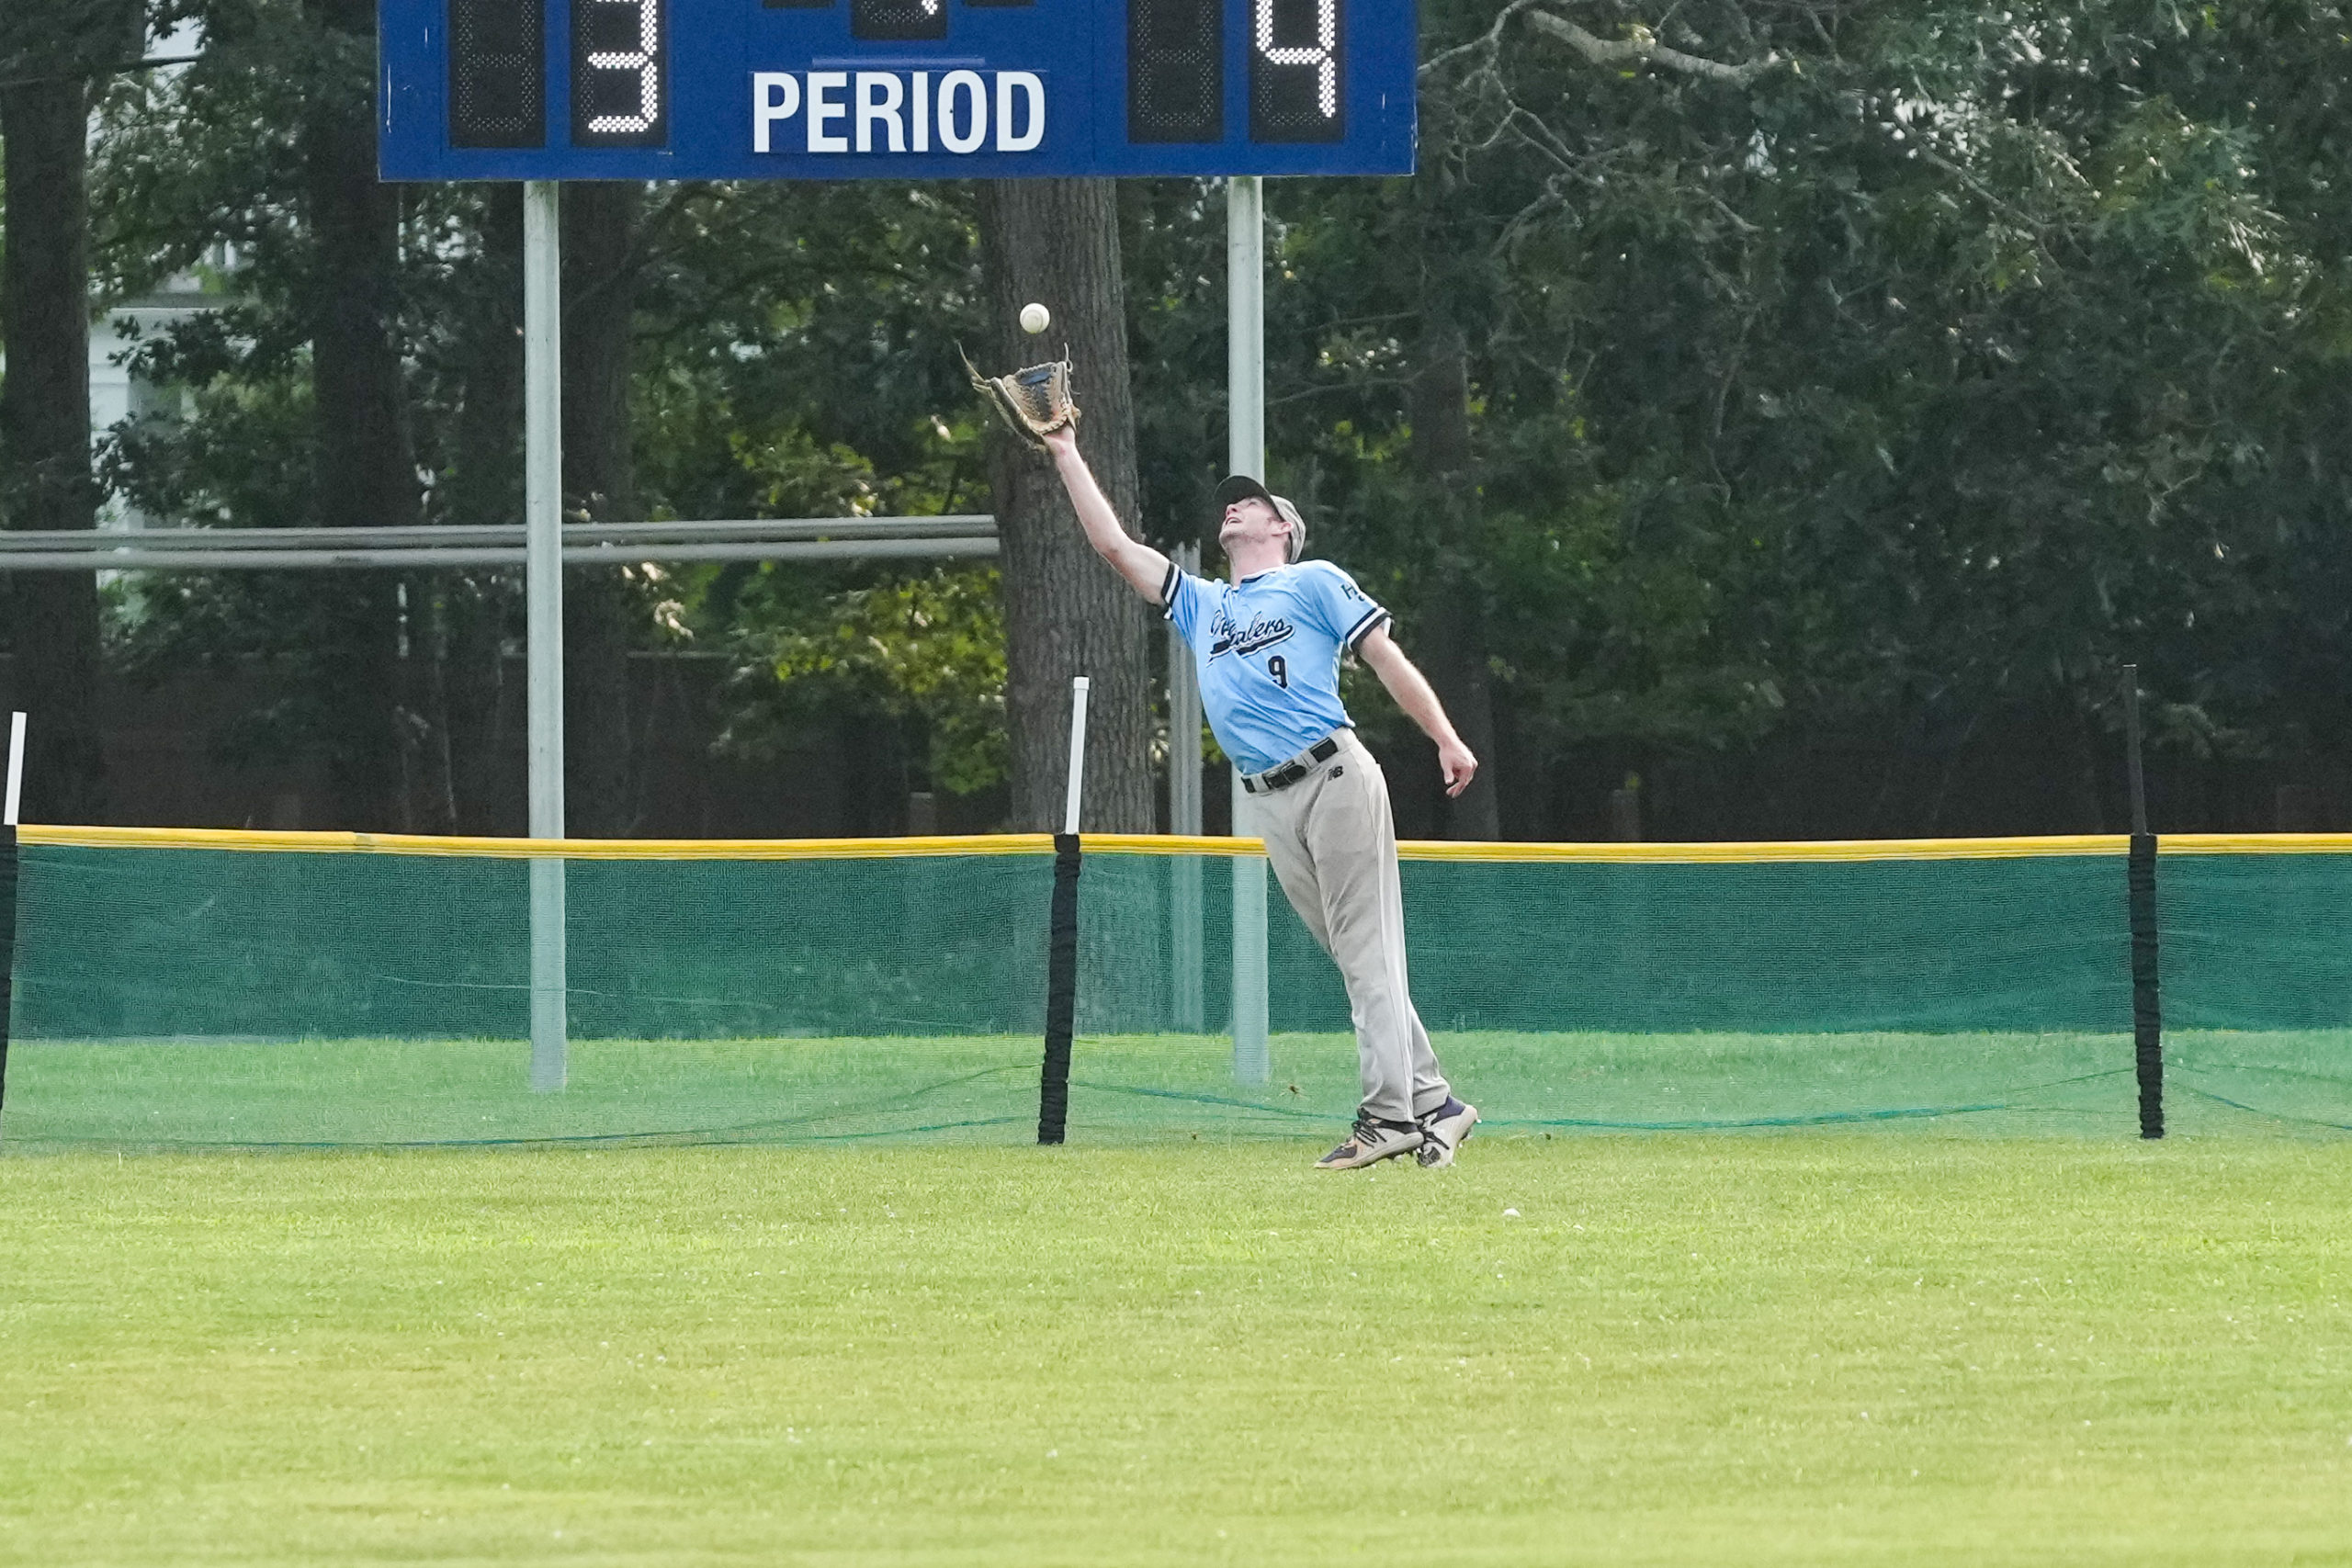 John Collins (Merrimack) makes a leaping play in the outfield for the Whalers.